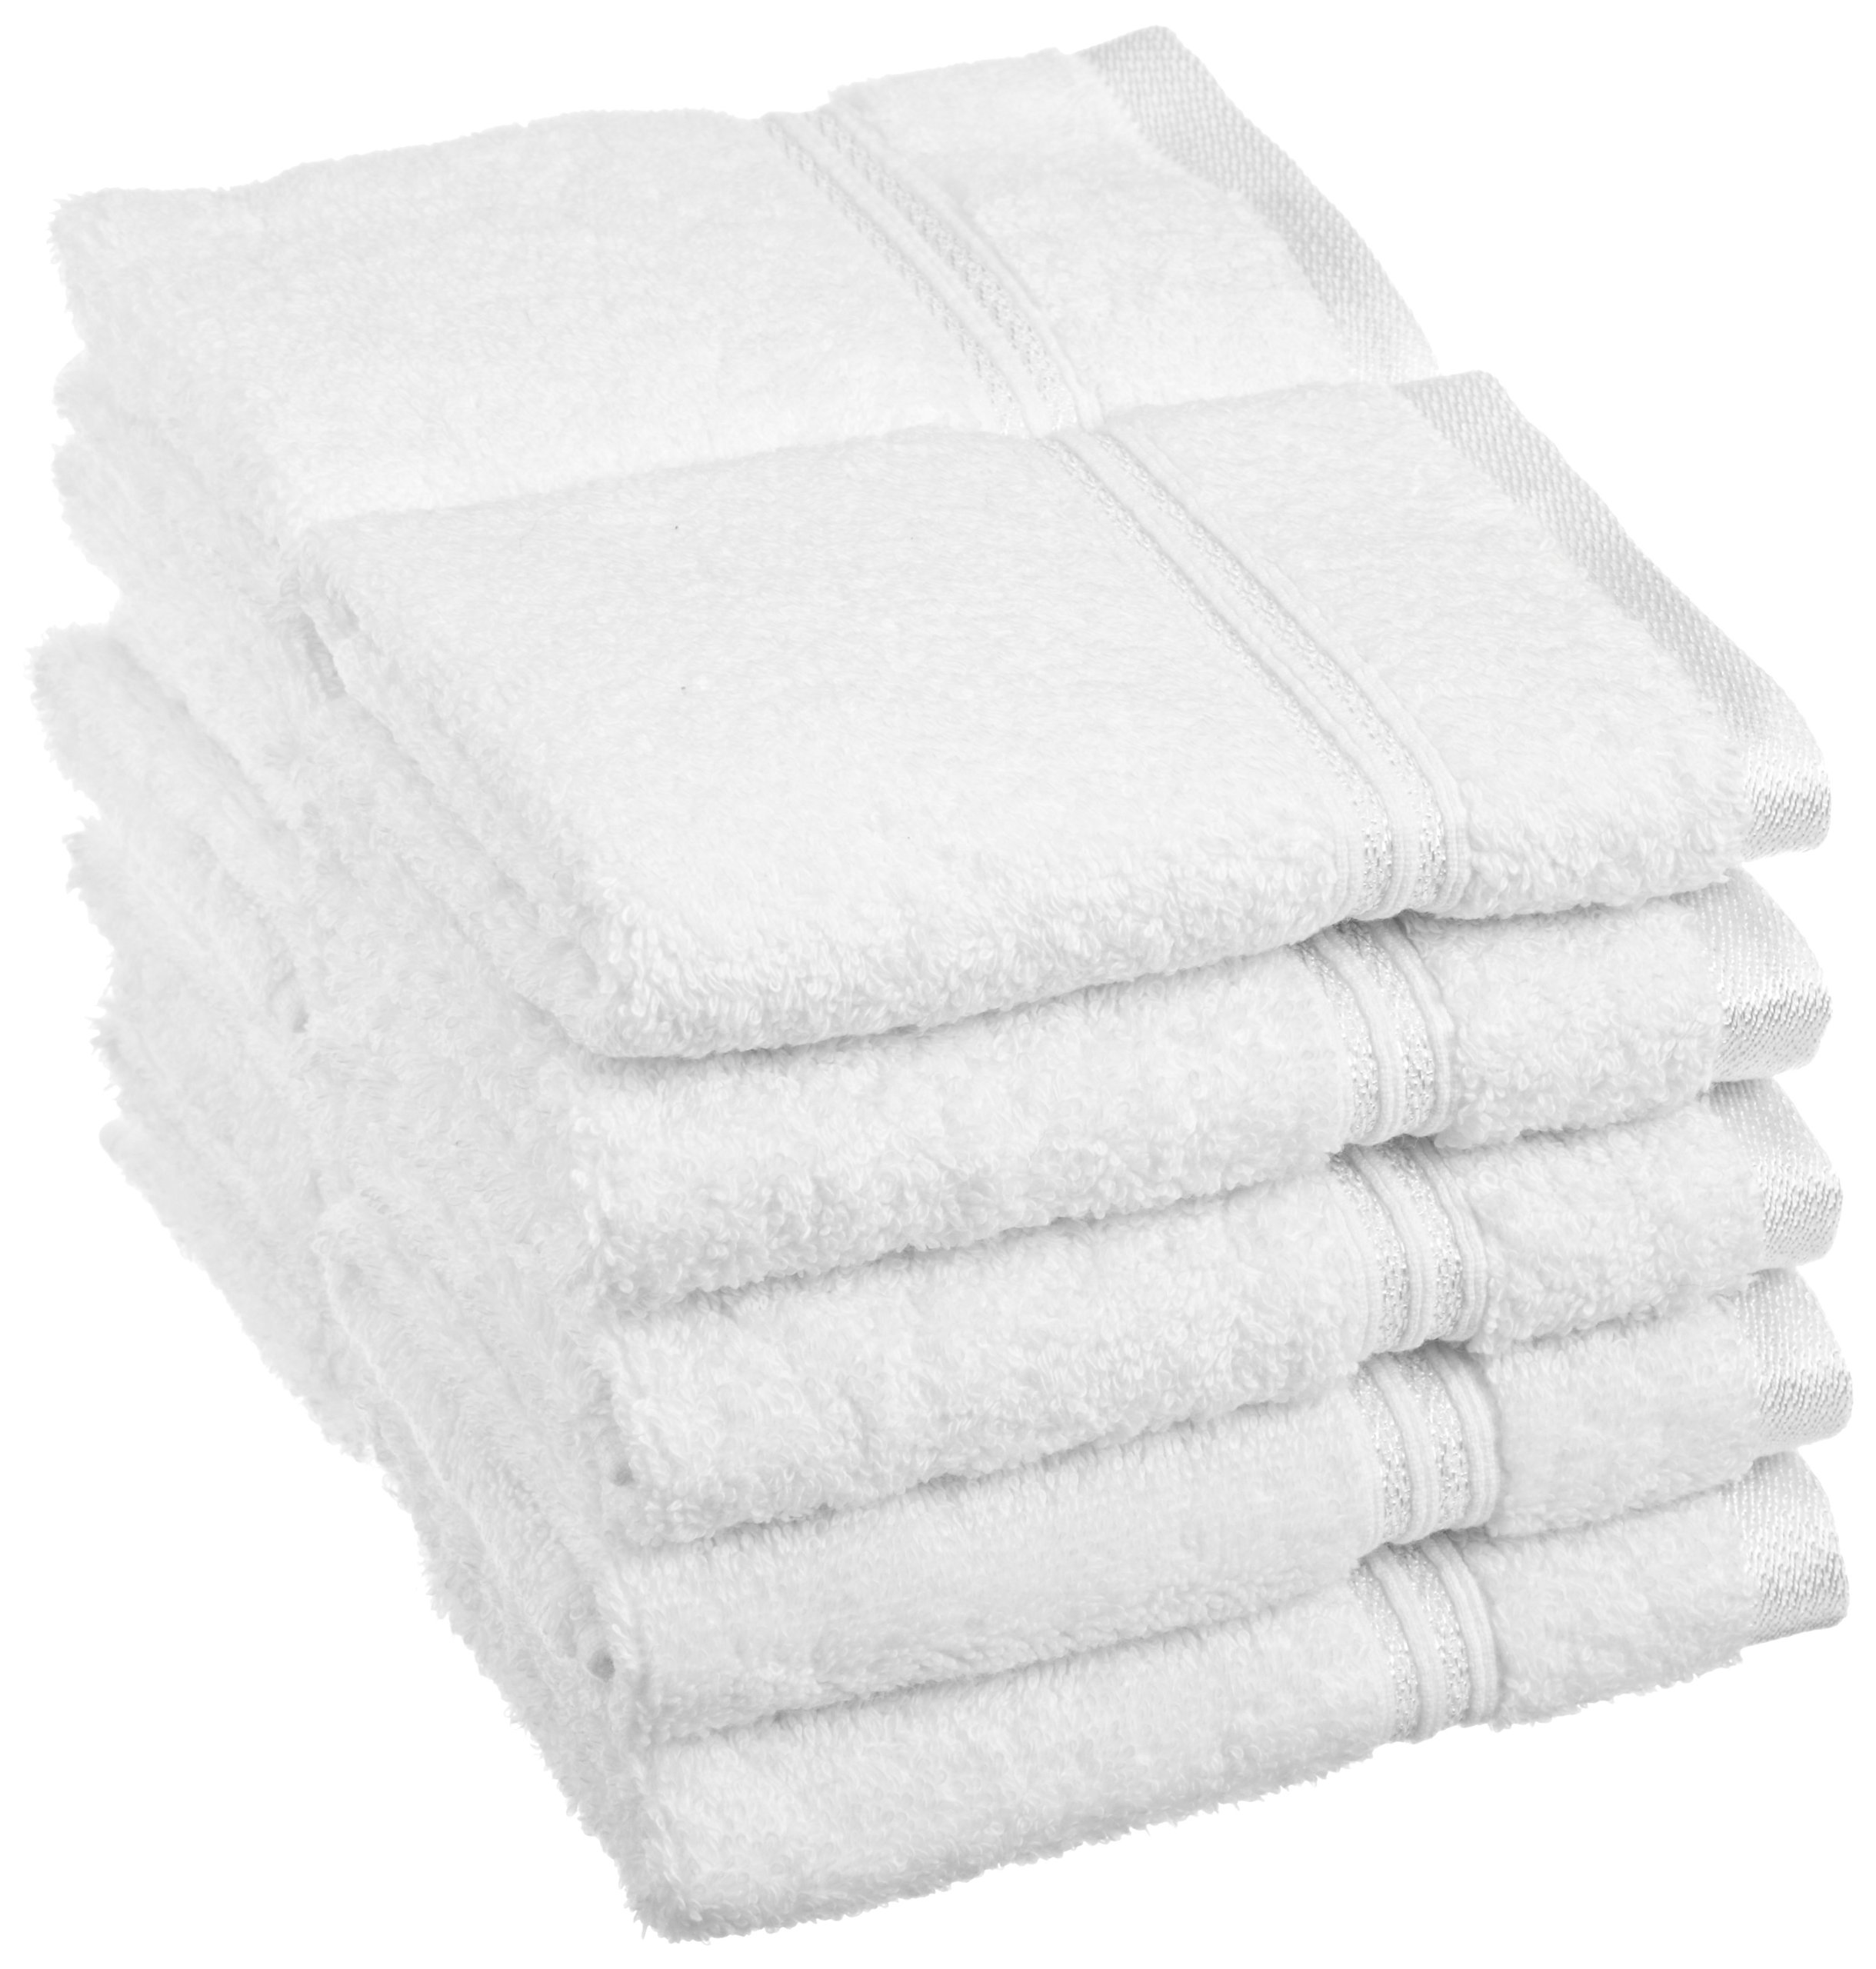 Superior Luxurious Soft Hotel & Spa Quality Washcloth Face Towel Set of 10, Made of 100% Premium Long-Staple Combed Cotton - White, 13'' x 13'' each